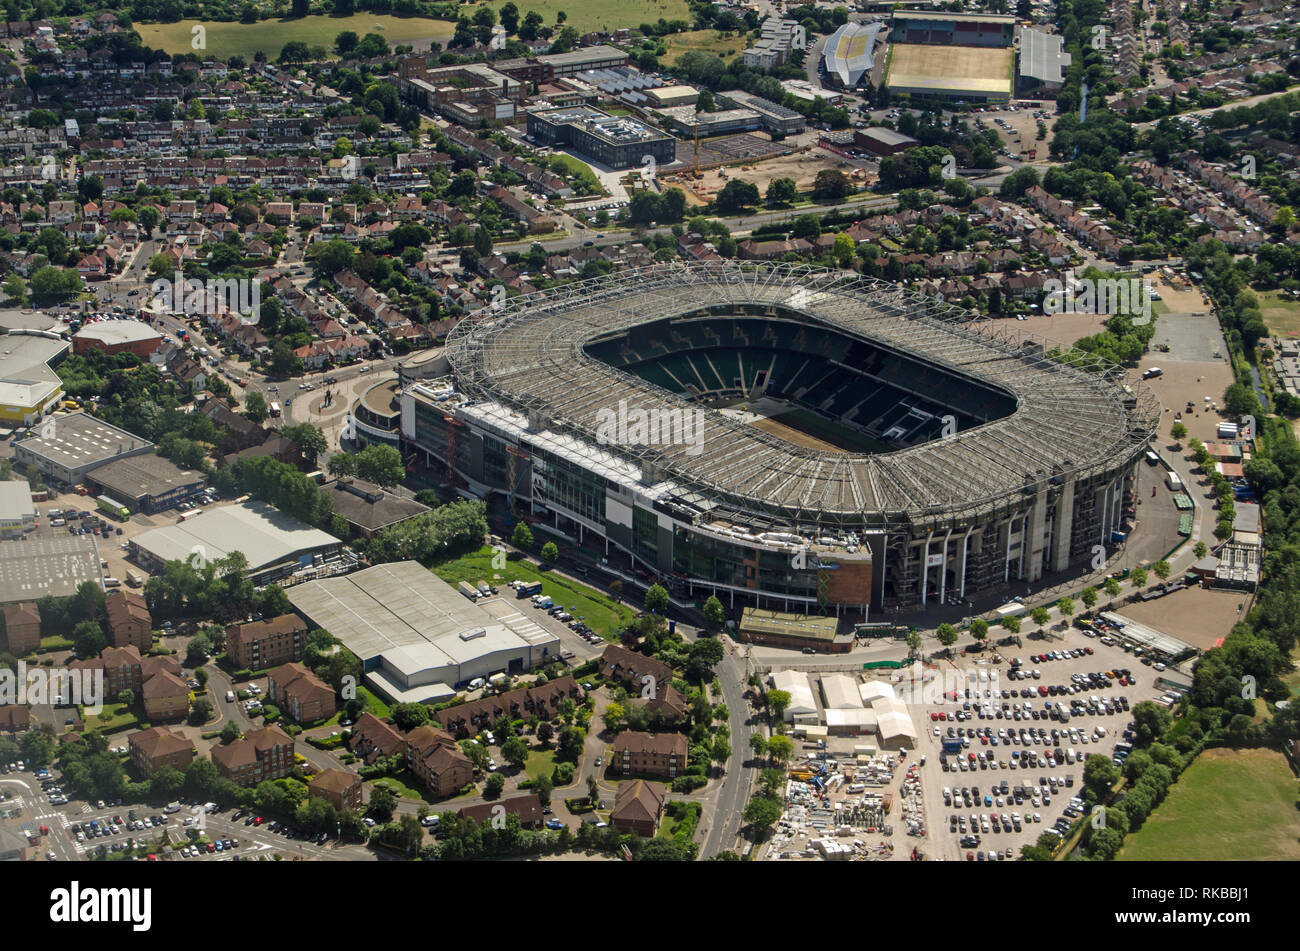 Aerial view of the famous rugby stadium in Twickenham, South West London.  Home of the England Rugby Football Union.  The smaller Stoop Memorial Groun - Stock Image